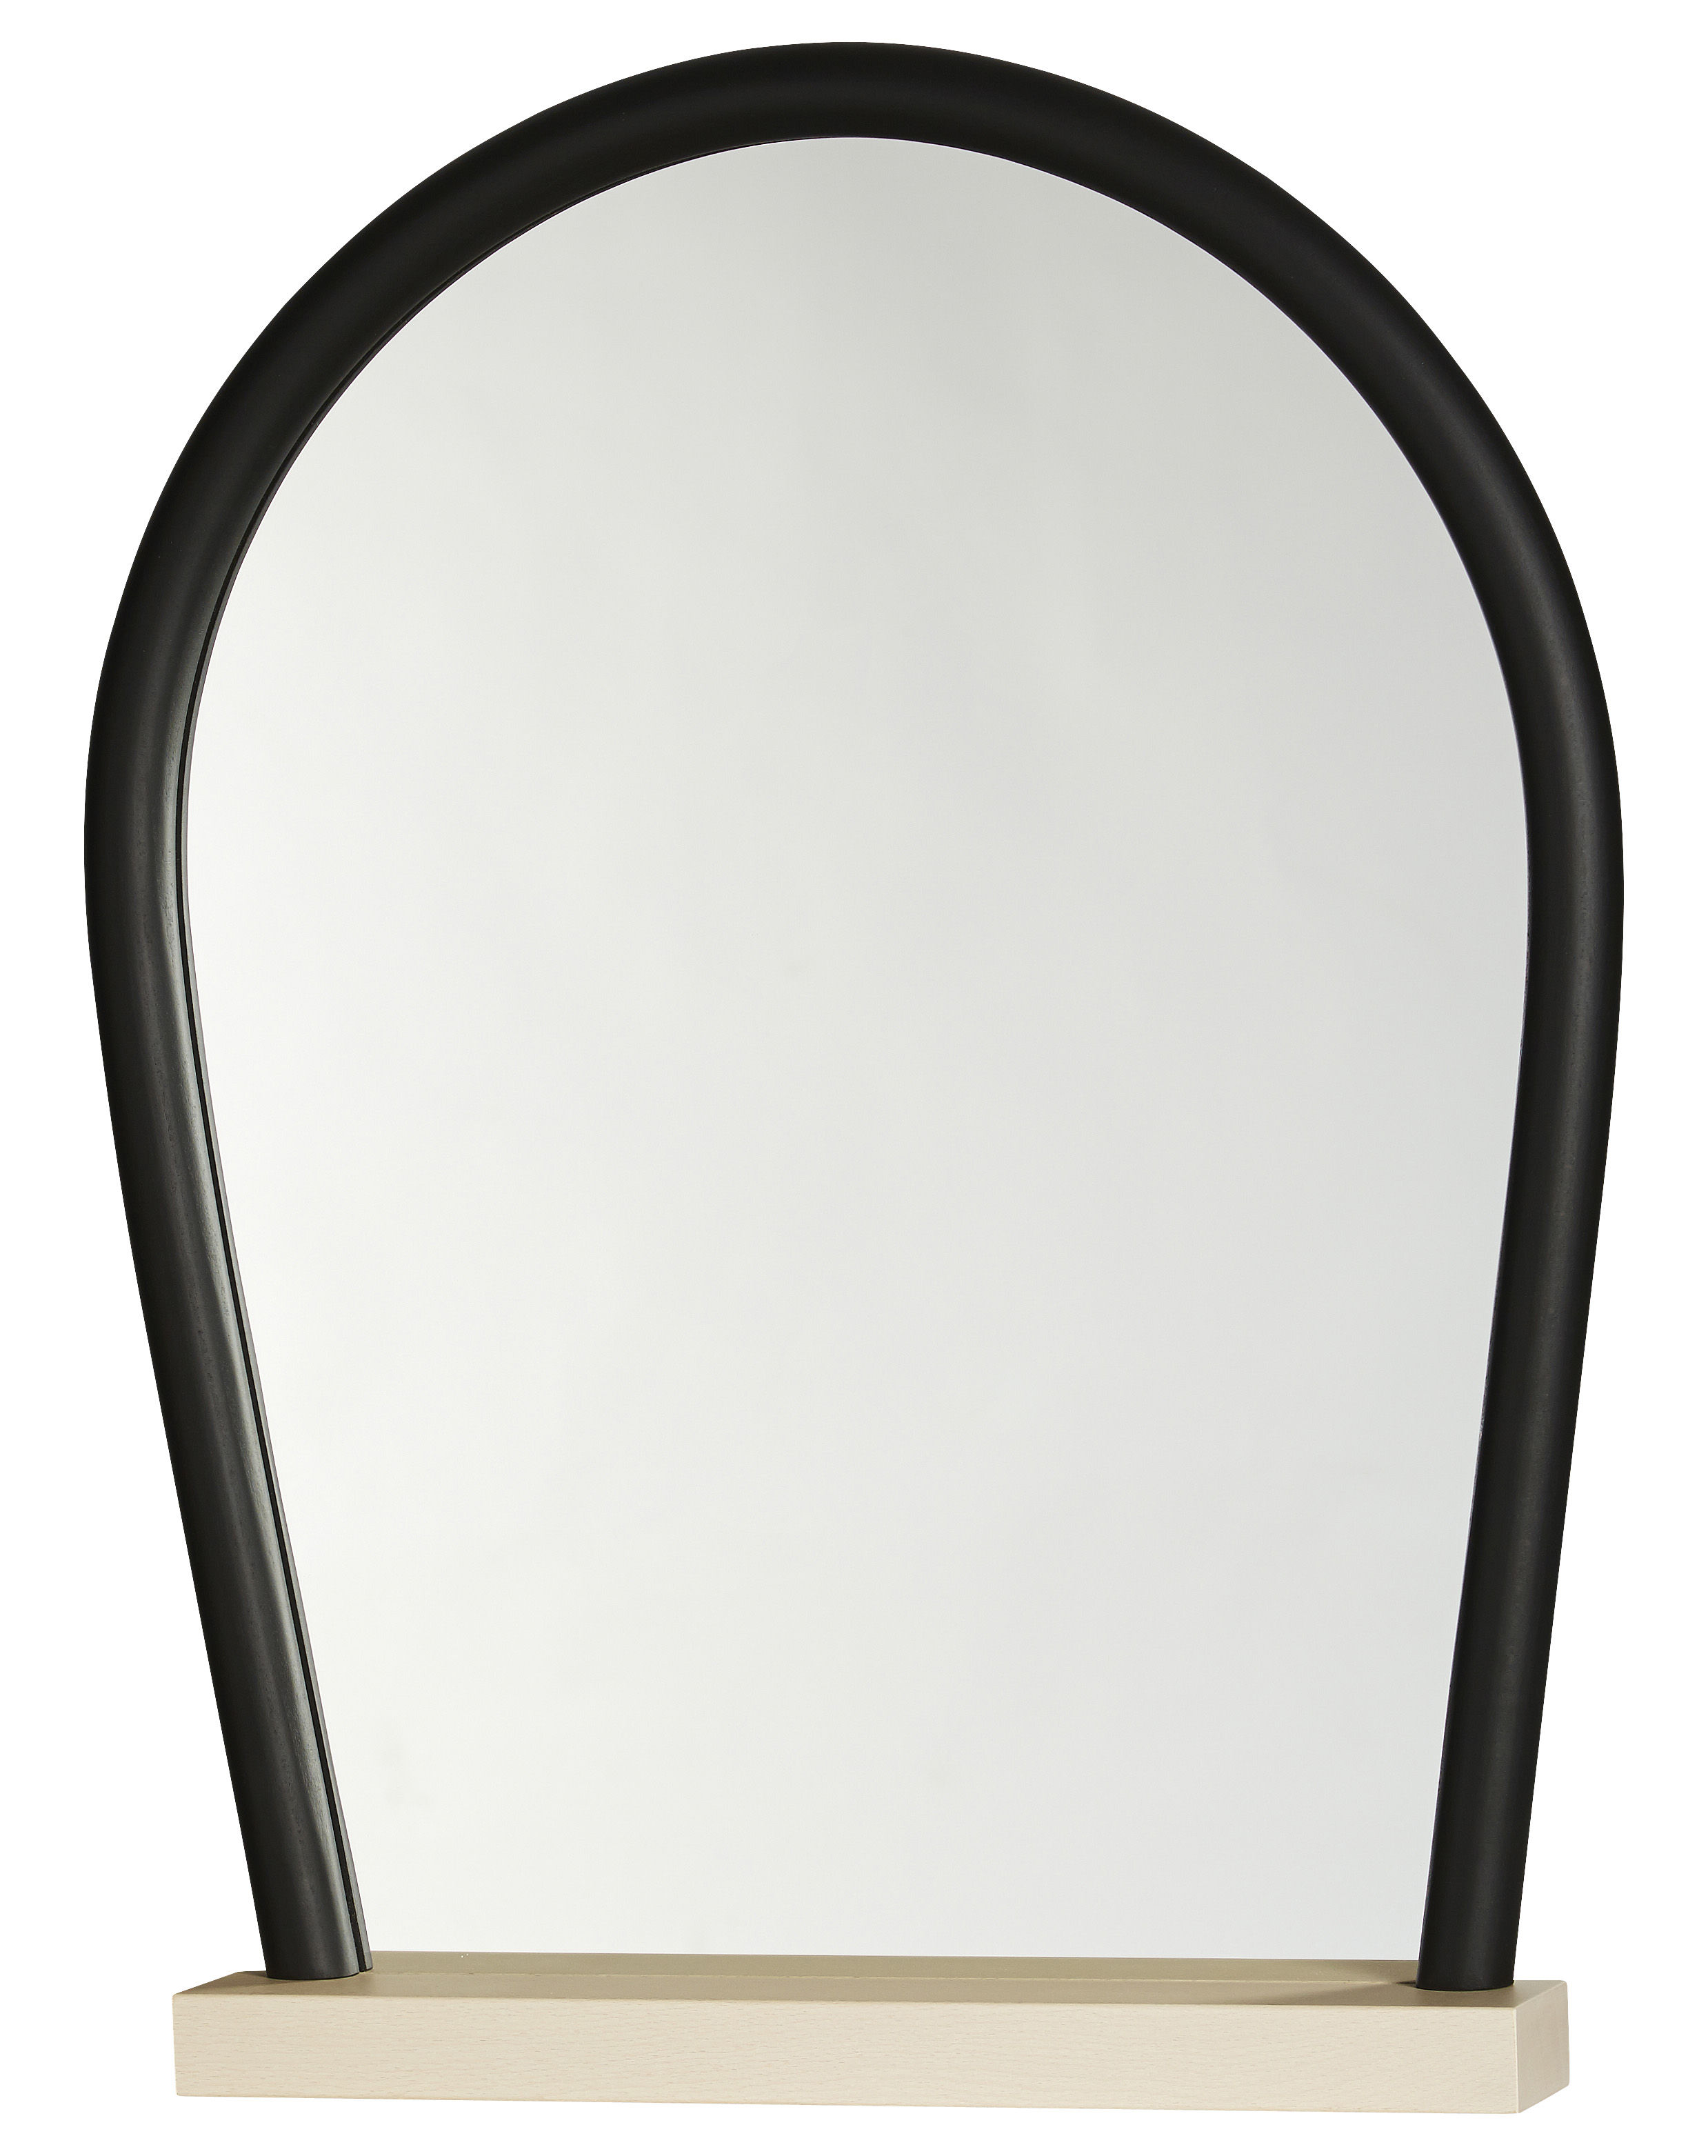 bent wood mirror natural wood base black by hay